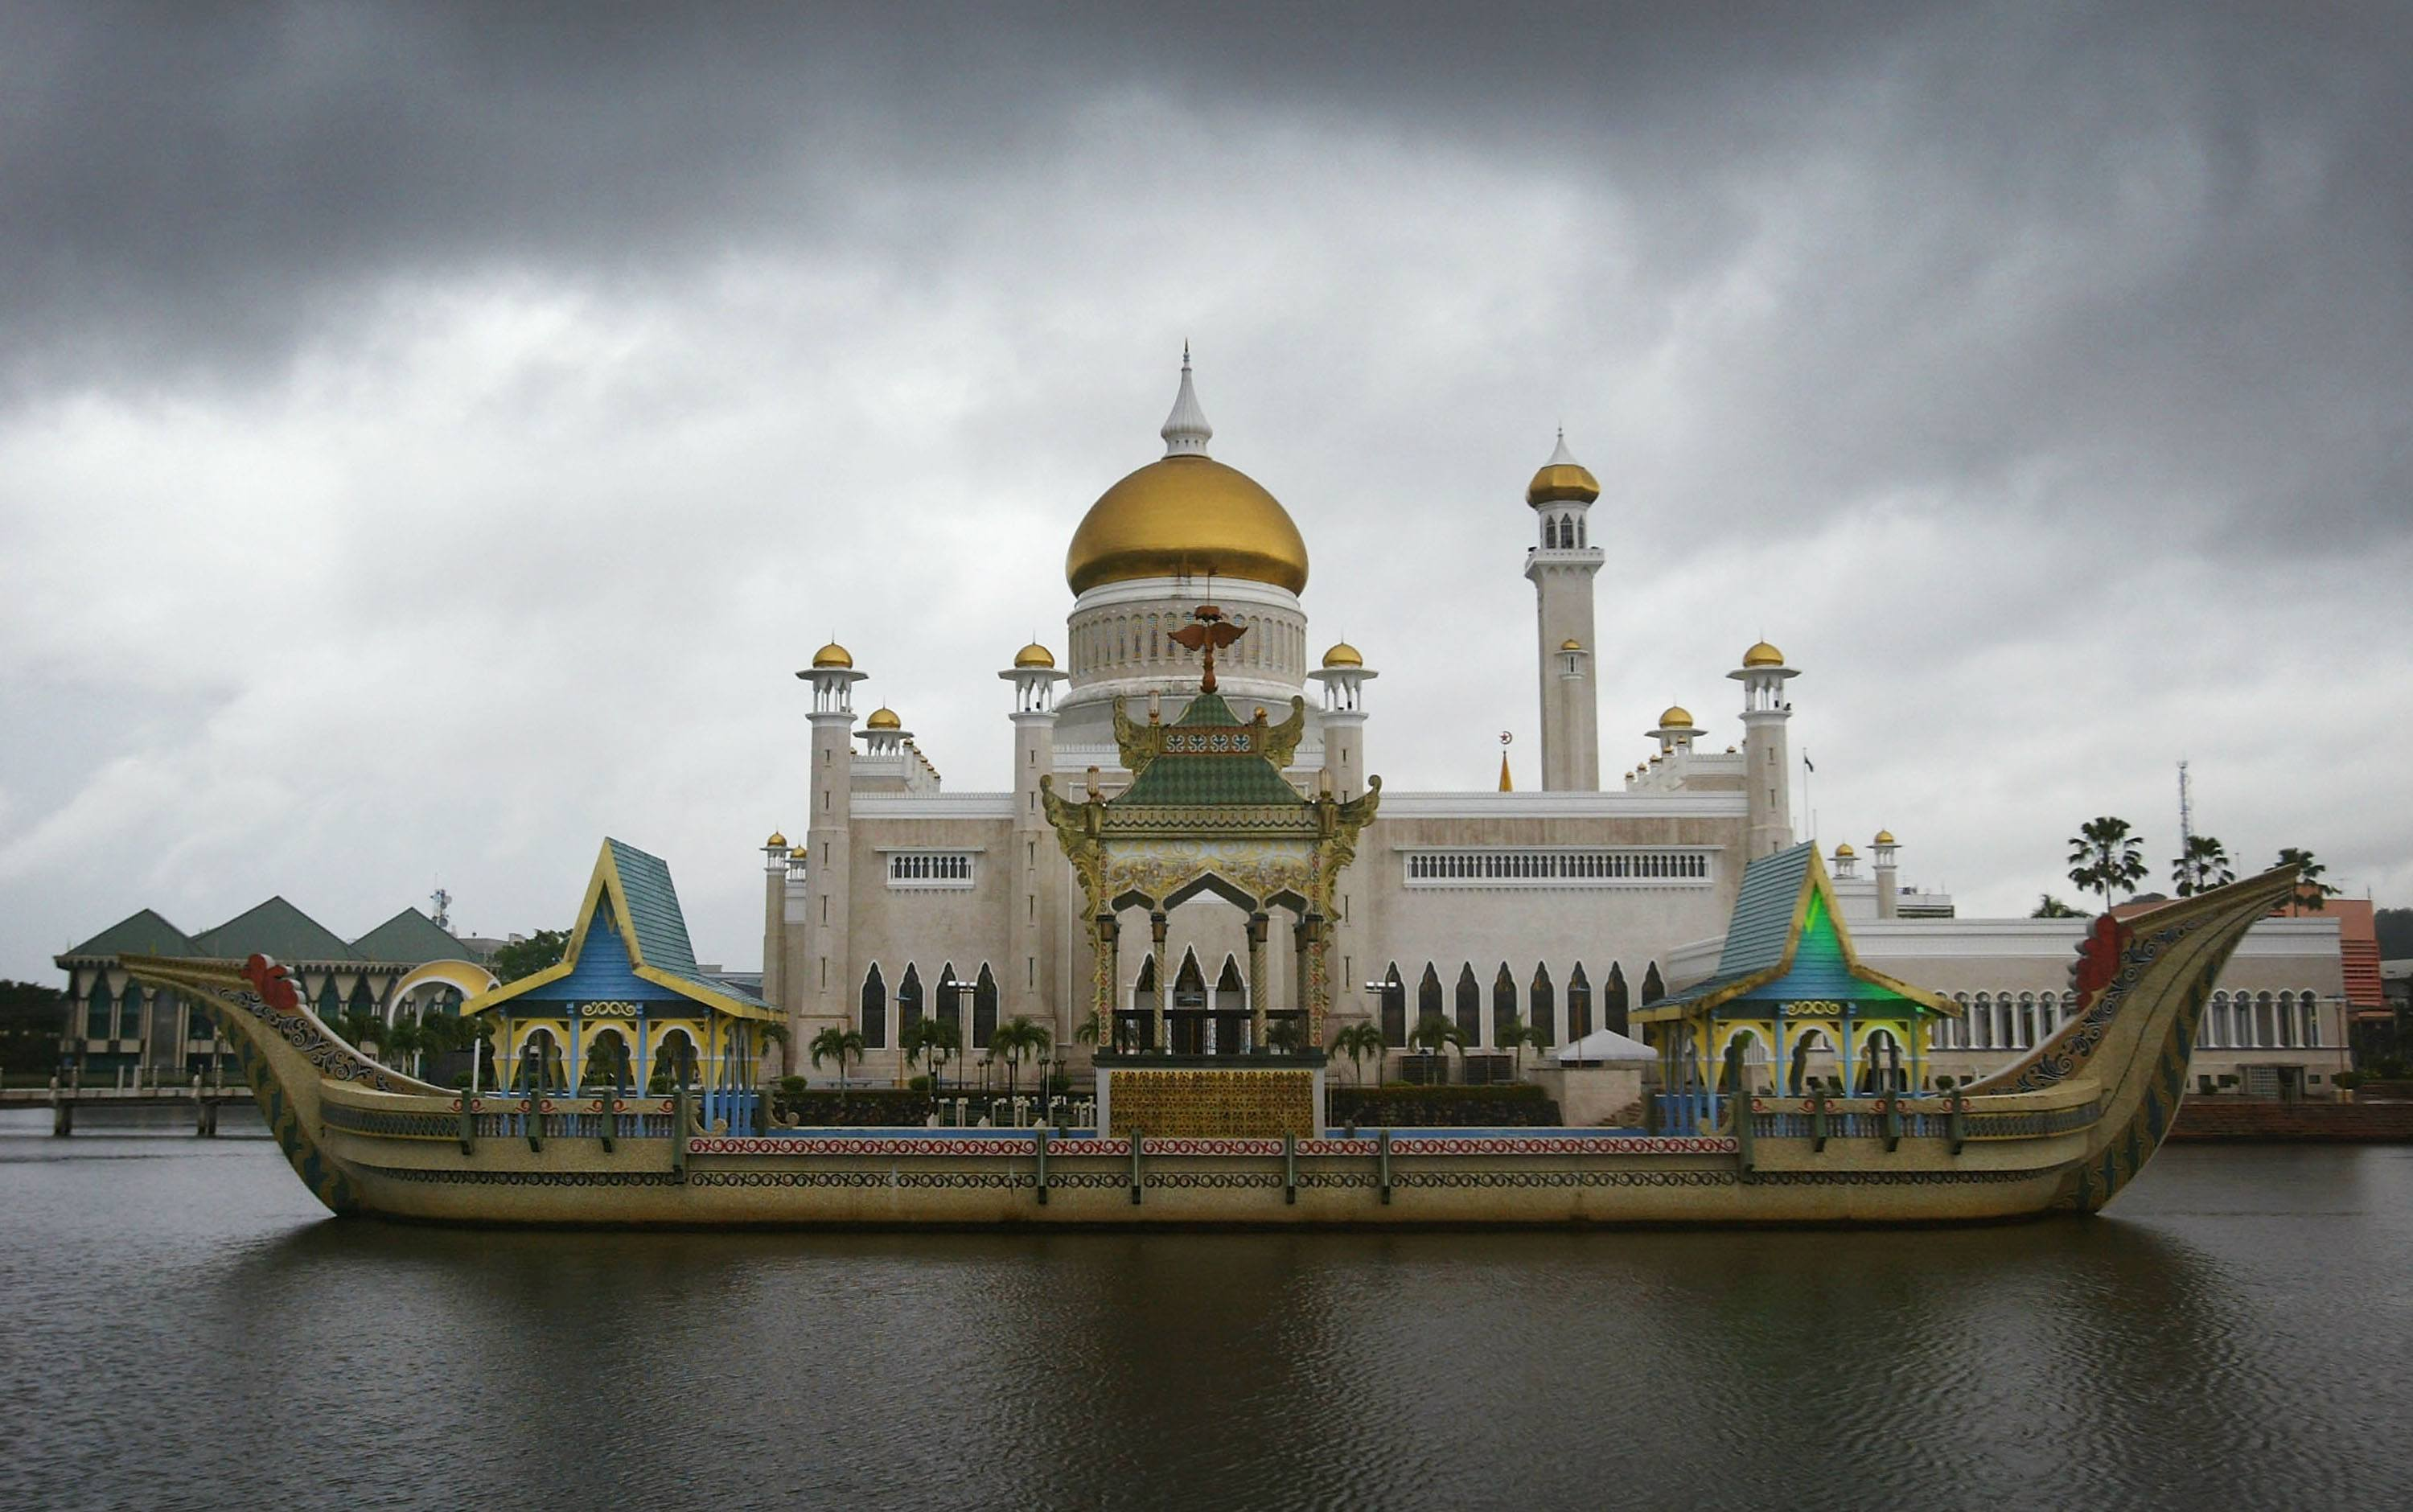 The Sultan Omar Ali Saifuddien Mosque in Brunei